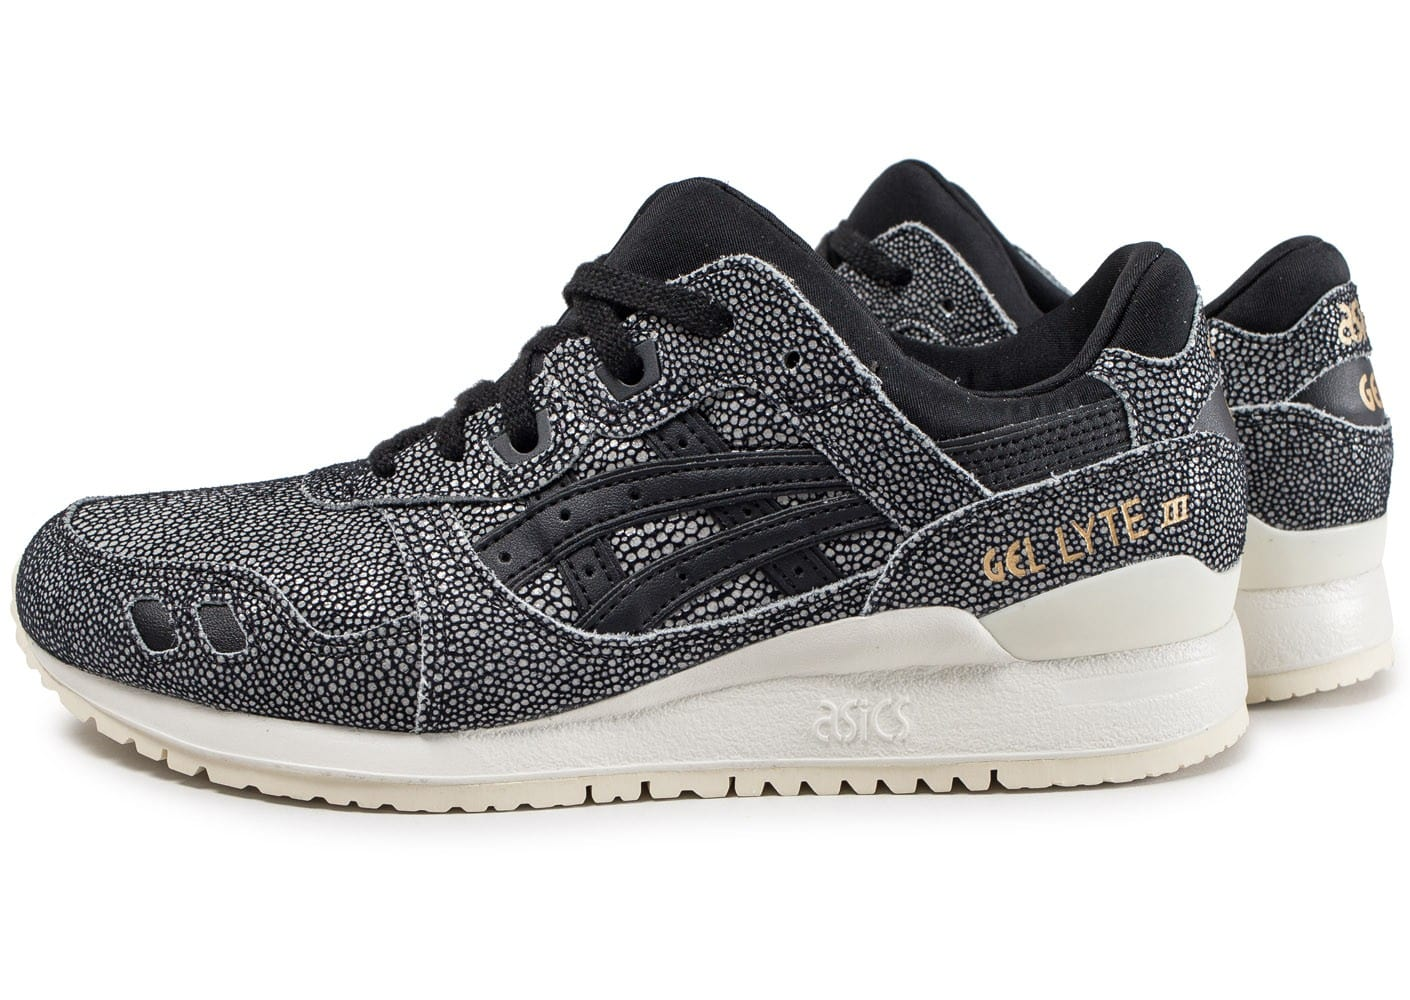 asics gel lyte iii noire et blanche chaussures black friday chausport. Black Bedroom Furniture Sets. Home Design Ideas